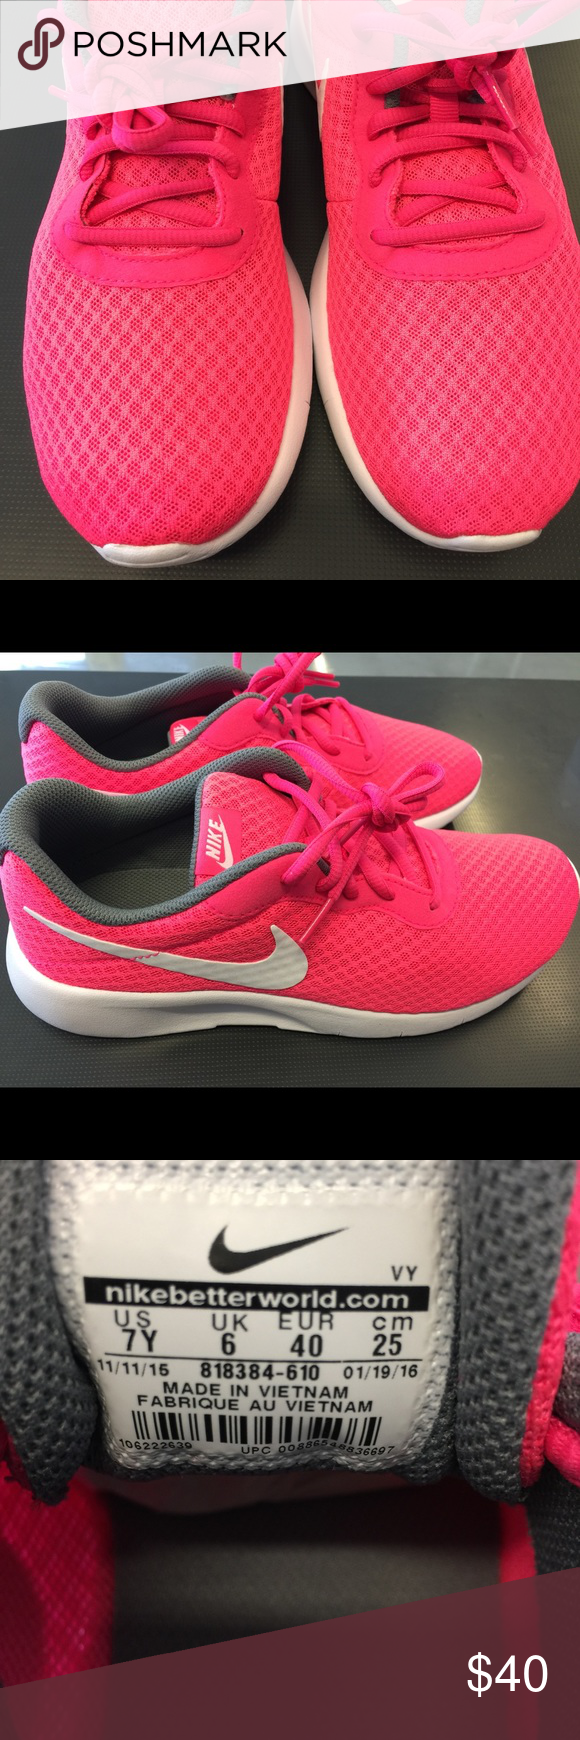 New-Nike Tianjin (GS) Girls' Shoes